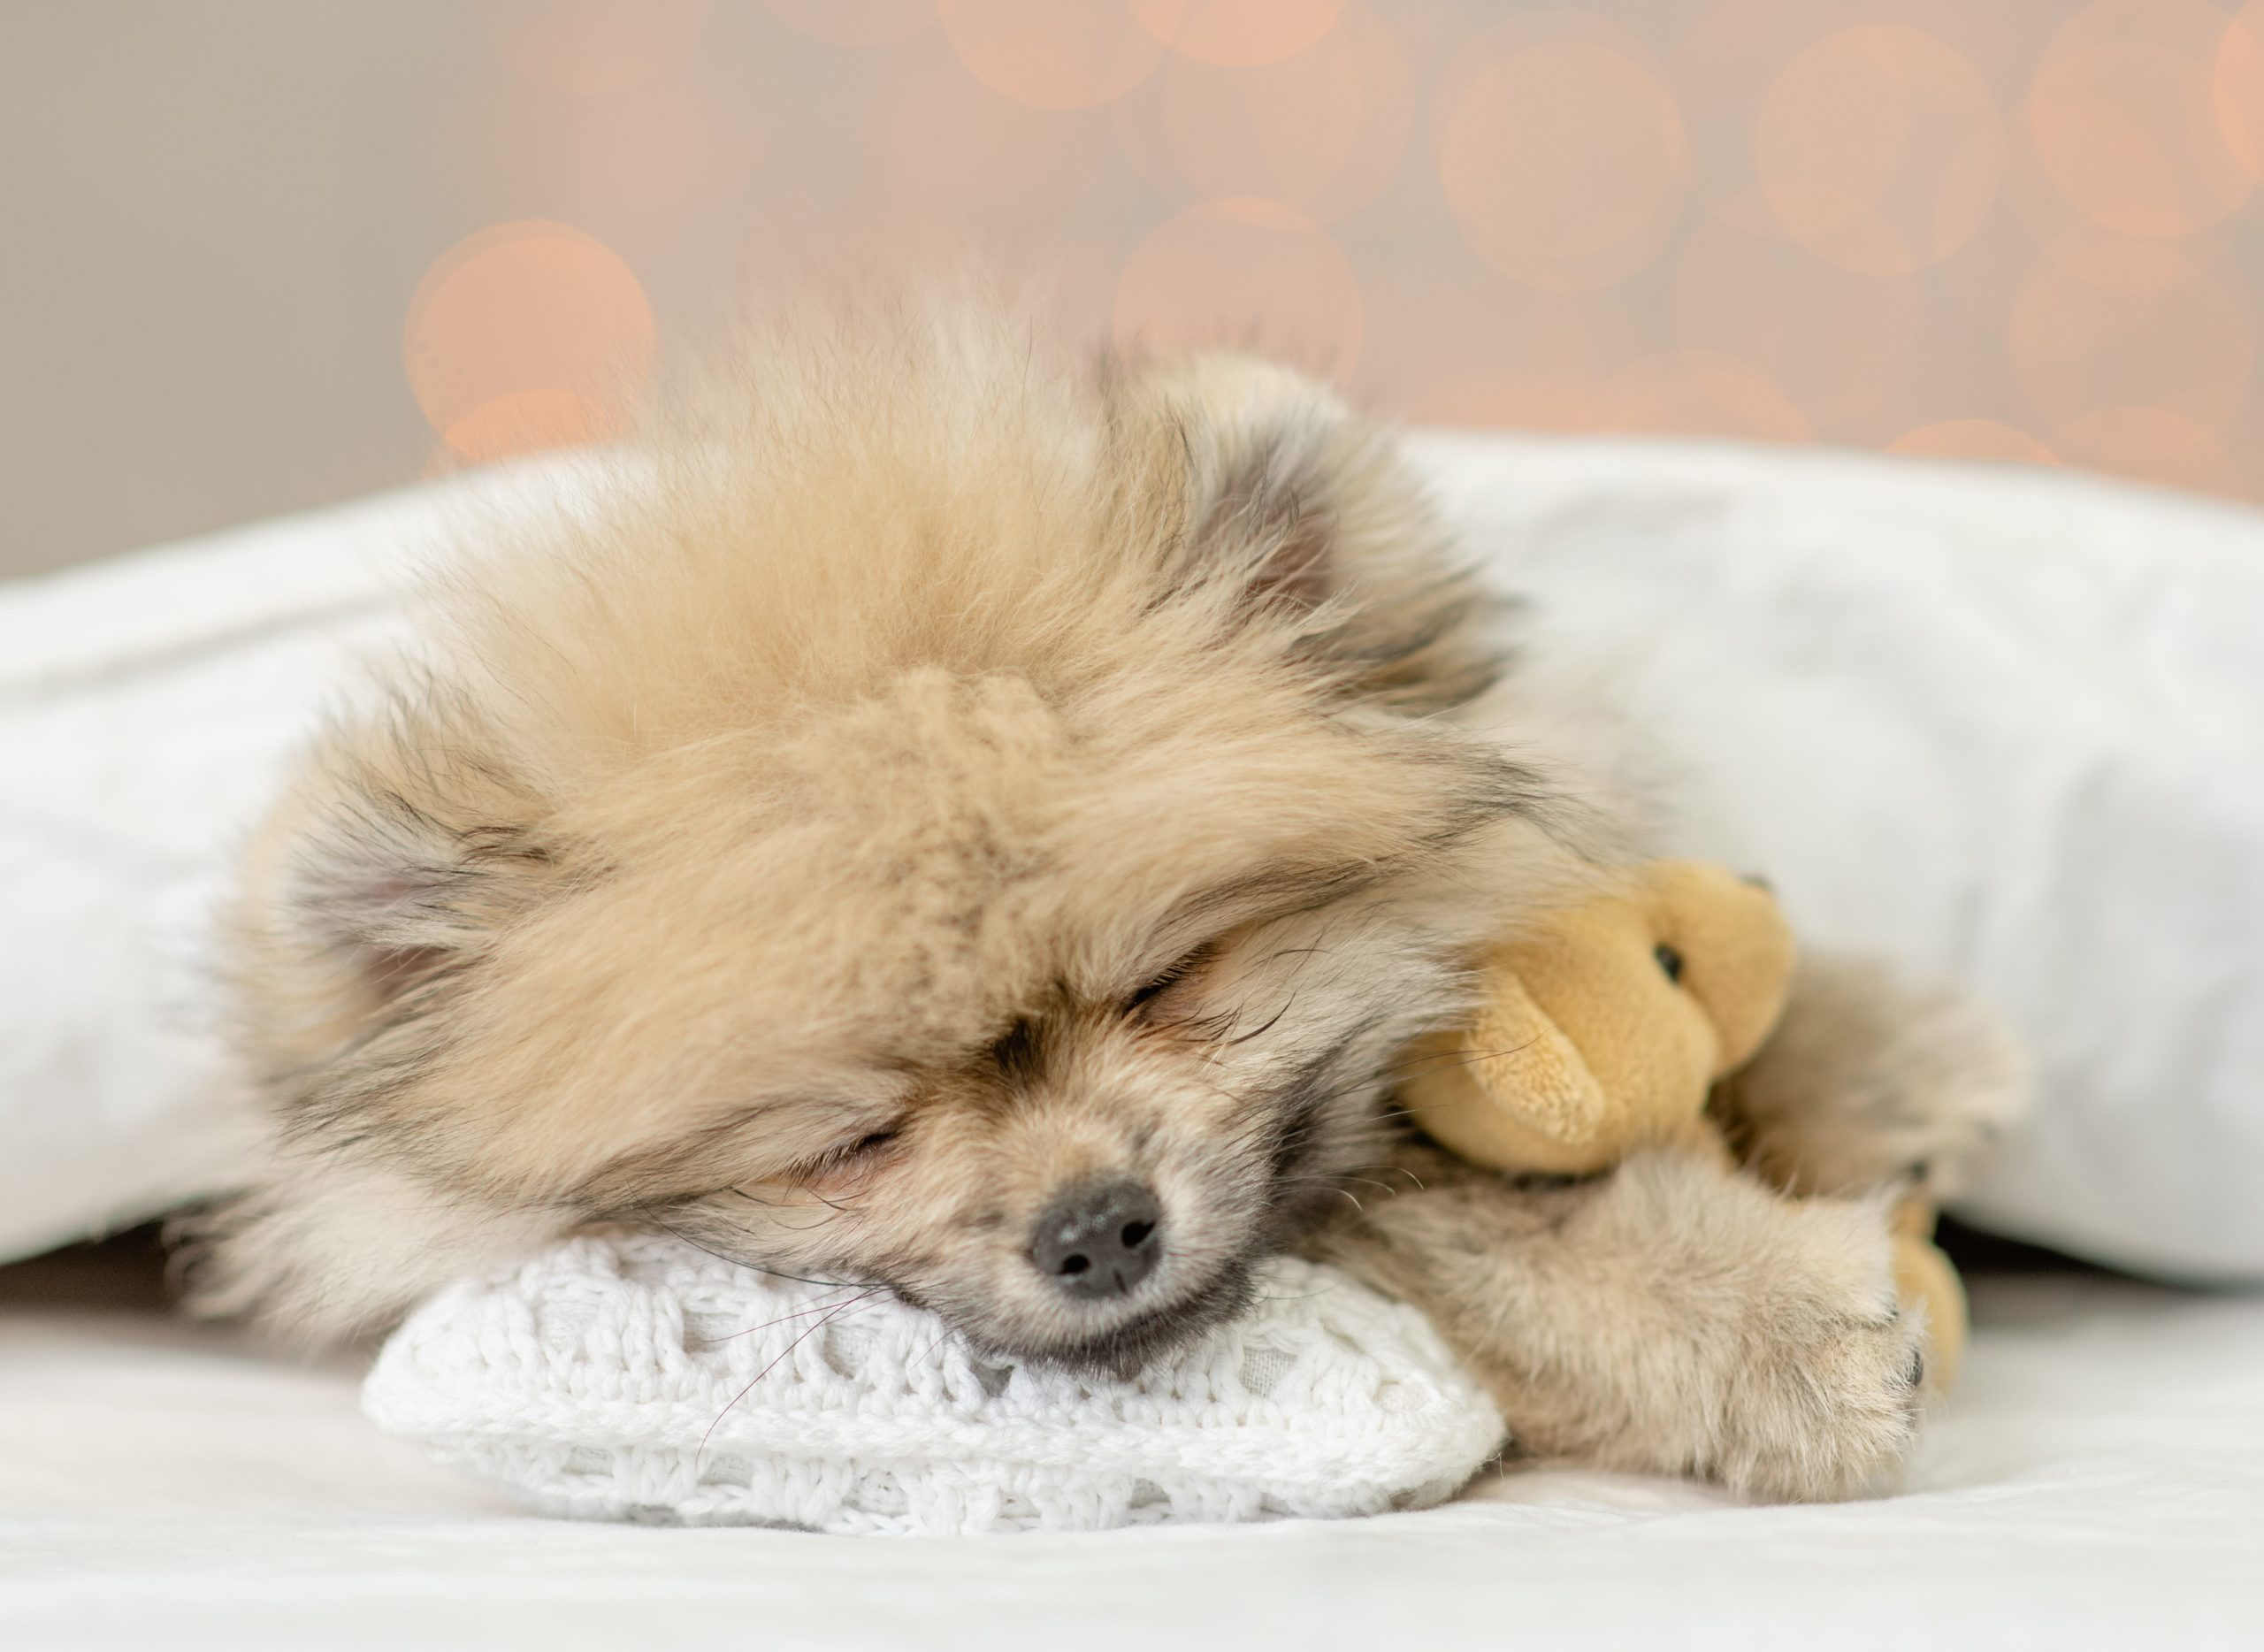 Sick Pomeranian snuggles under blanket with a Teddy bear. Infectious canine hepatitis is found in dogs, wolves, or foxes. Without vaccination it is contagious and poses a serious threat to puppies.